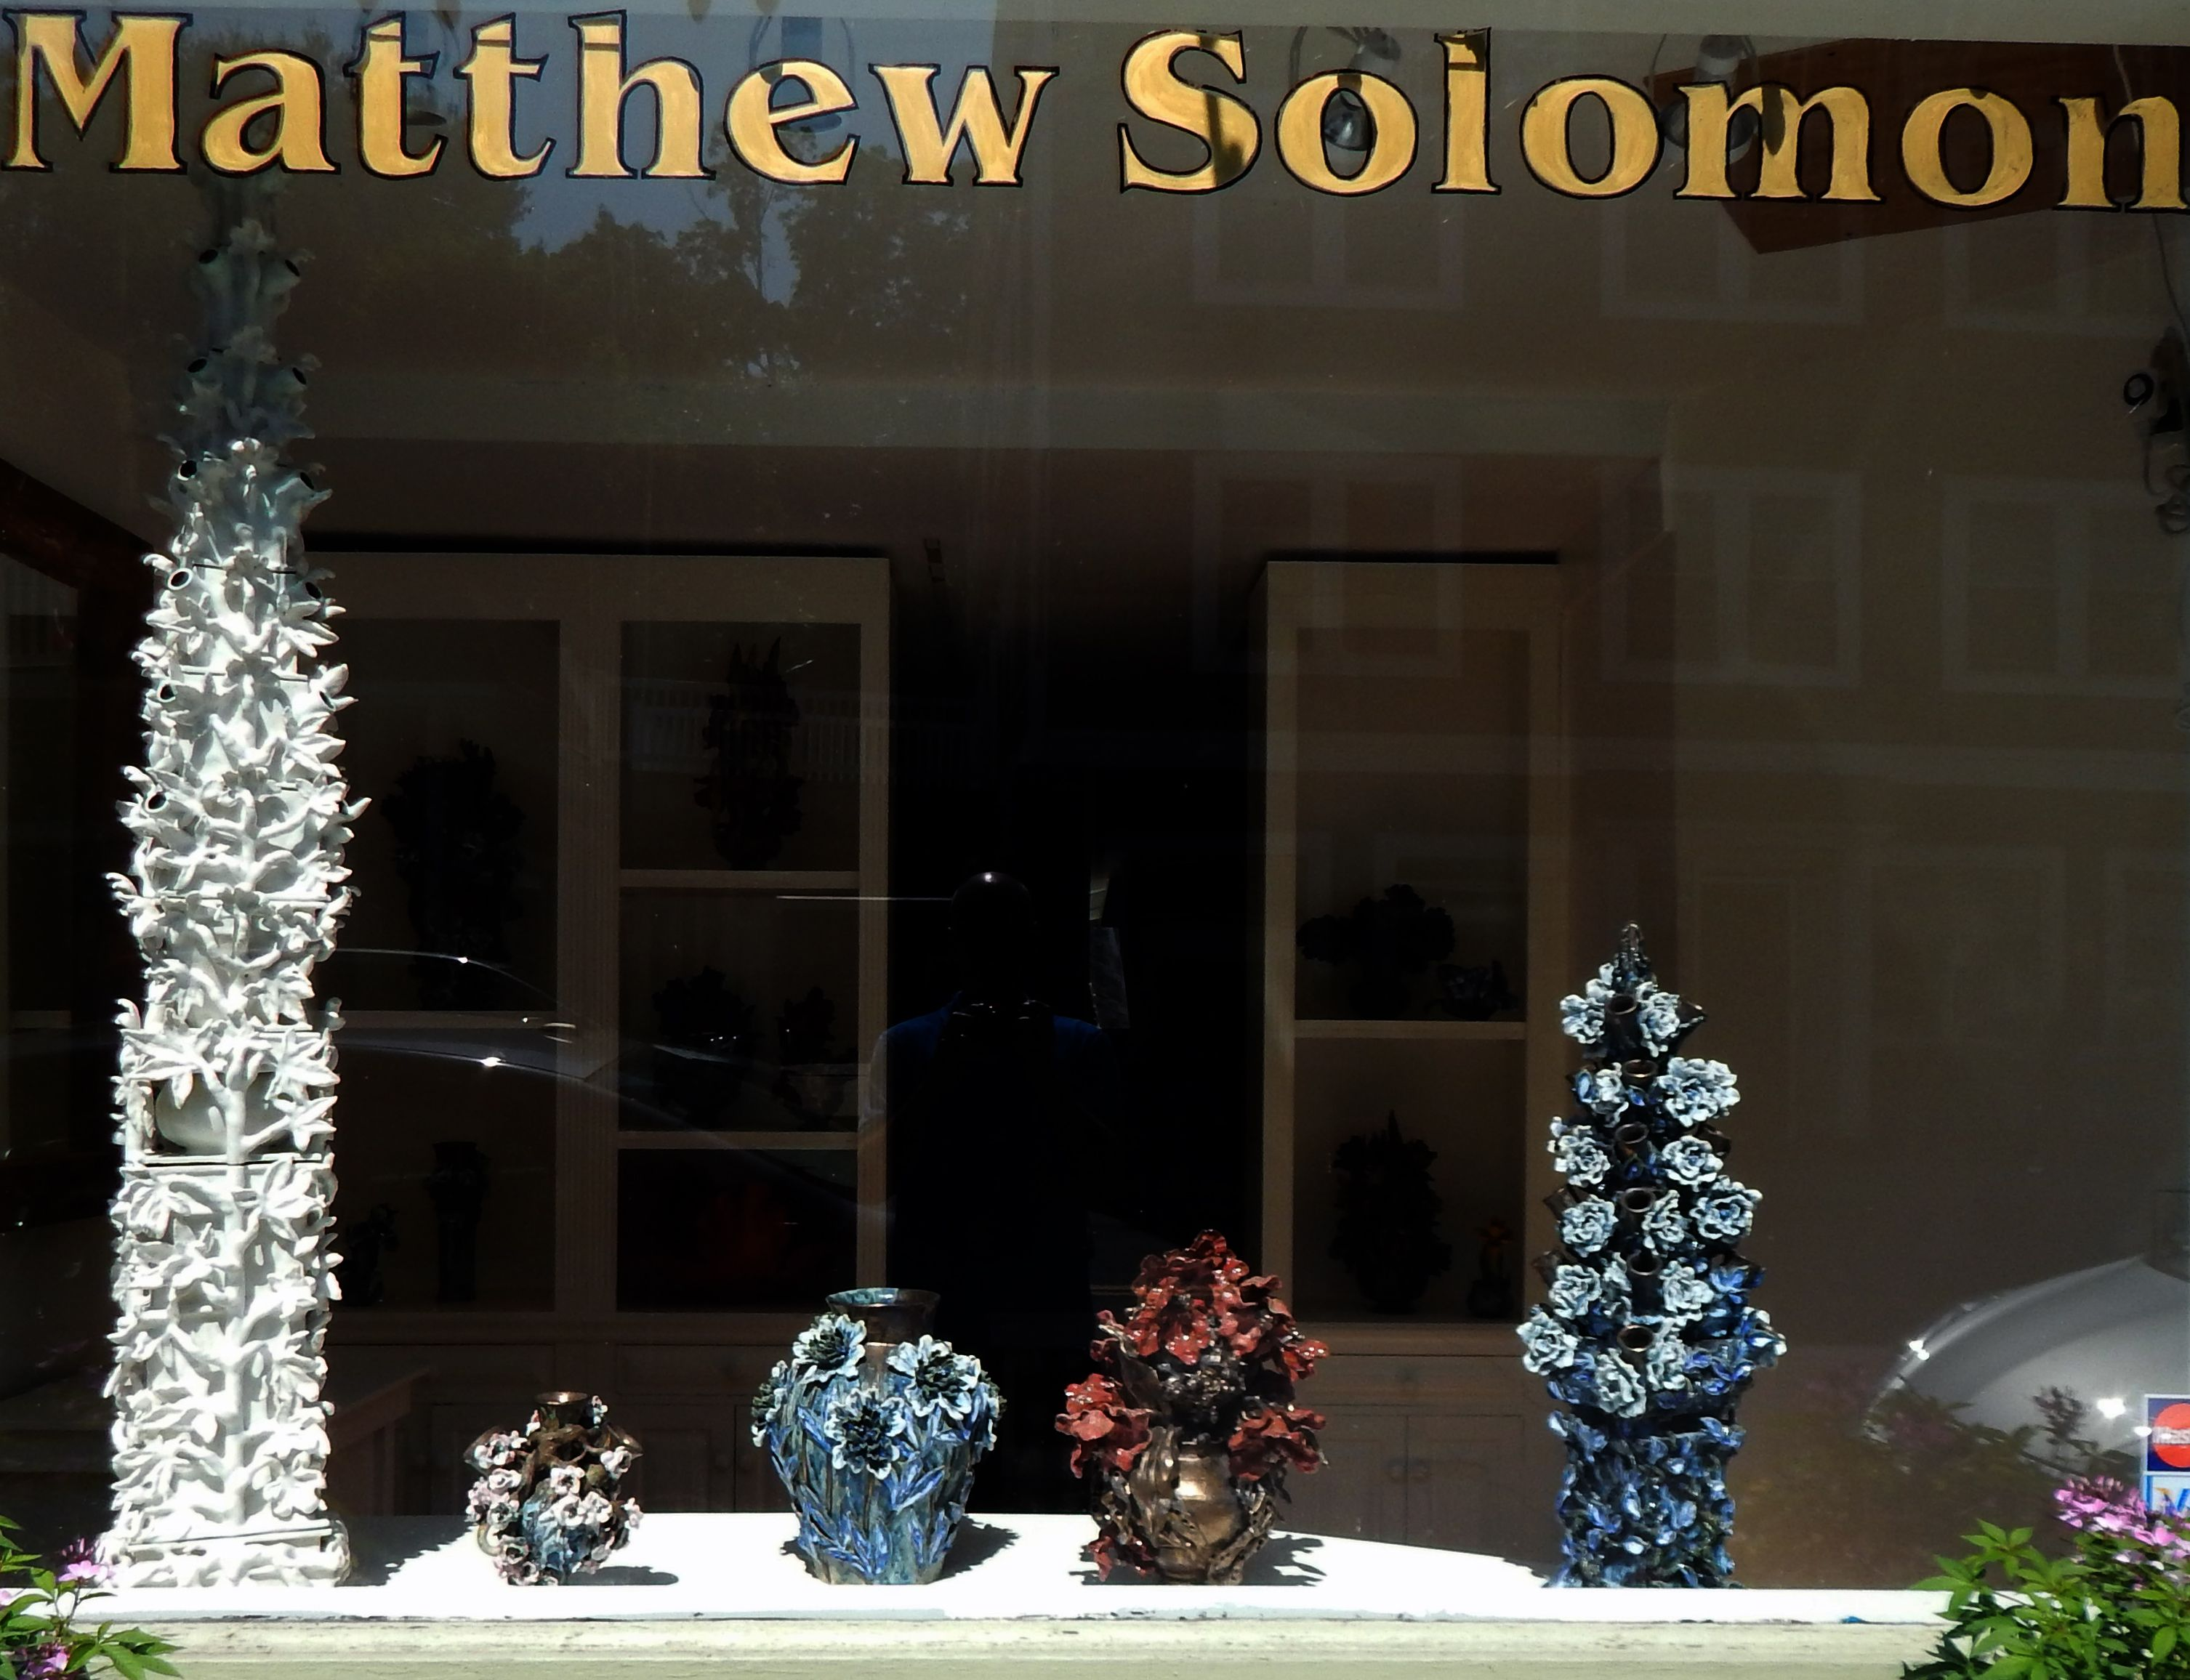 New york sullivan county narrowsburg - Narrowsburg Ny Is Home To A Gallery Displaying The Breath Taking Ceramics Pieces Of